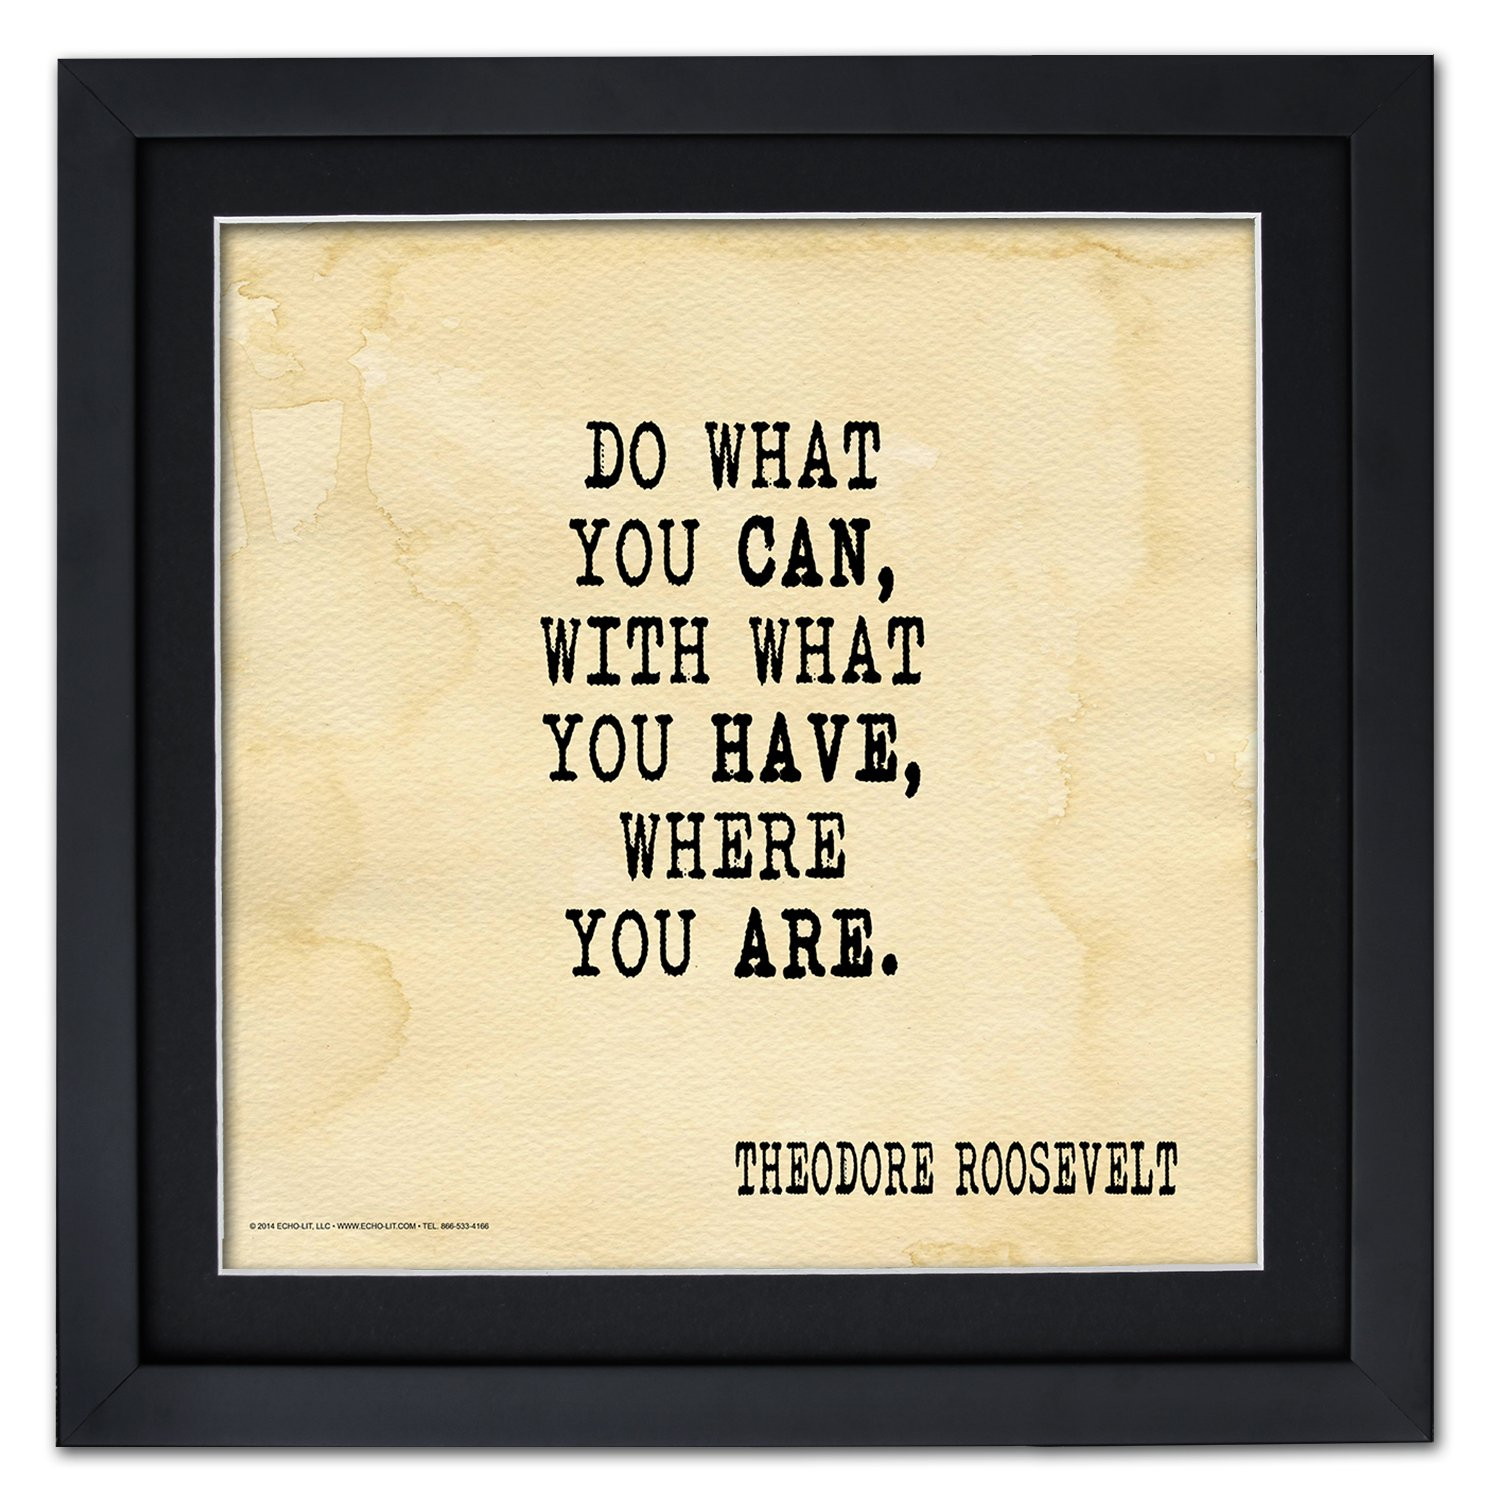 Amazon.com: Do What You Can Framed Motivational Poster Featuring a ...